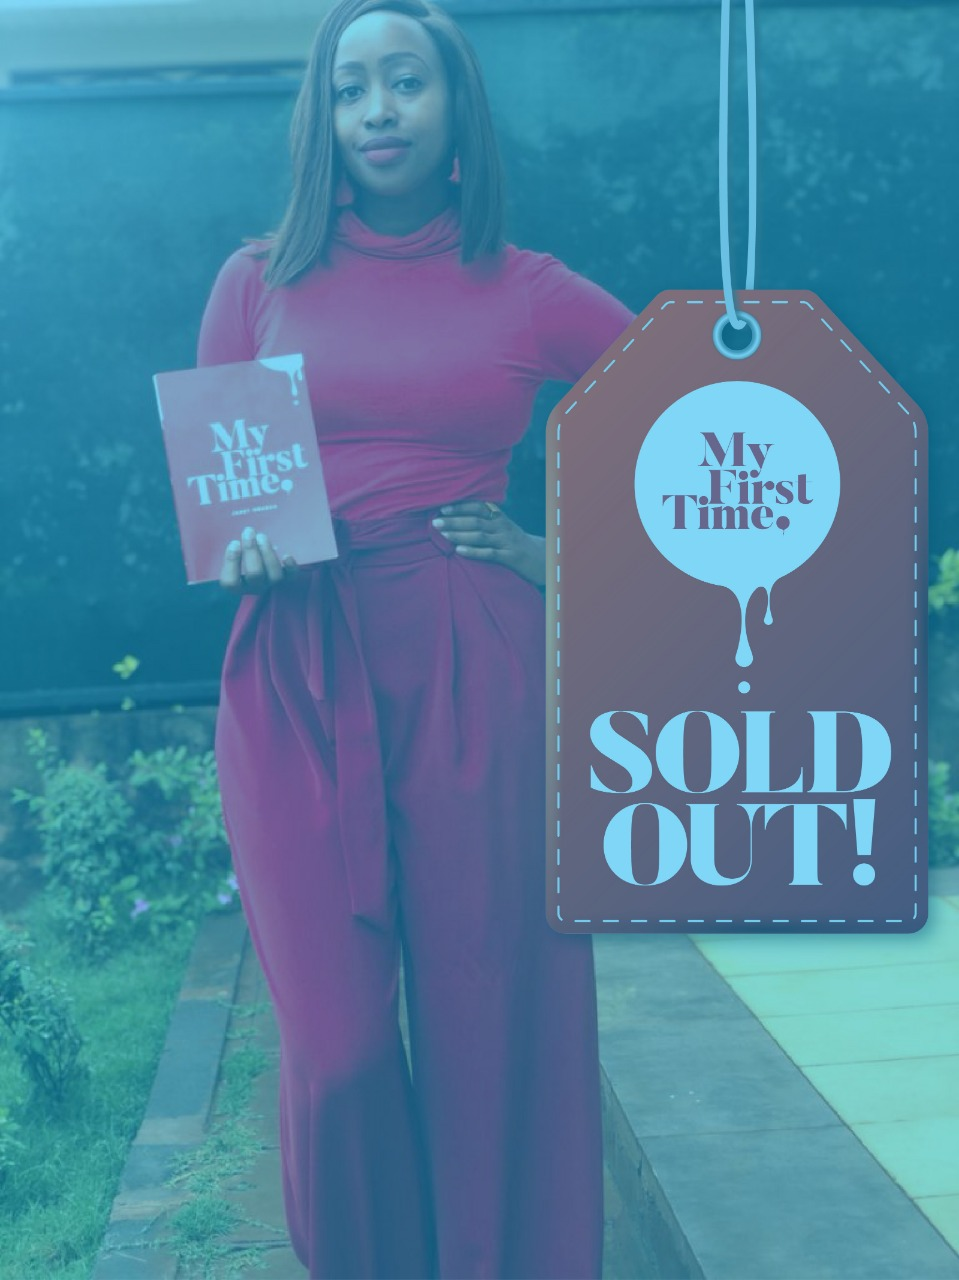 https://officialjanetmbugua.com/wp-content/uploads/2020/05/sold-out.jpeg